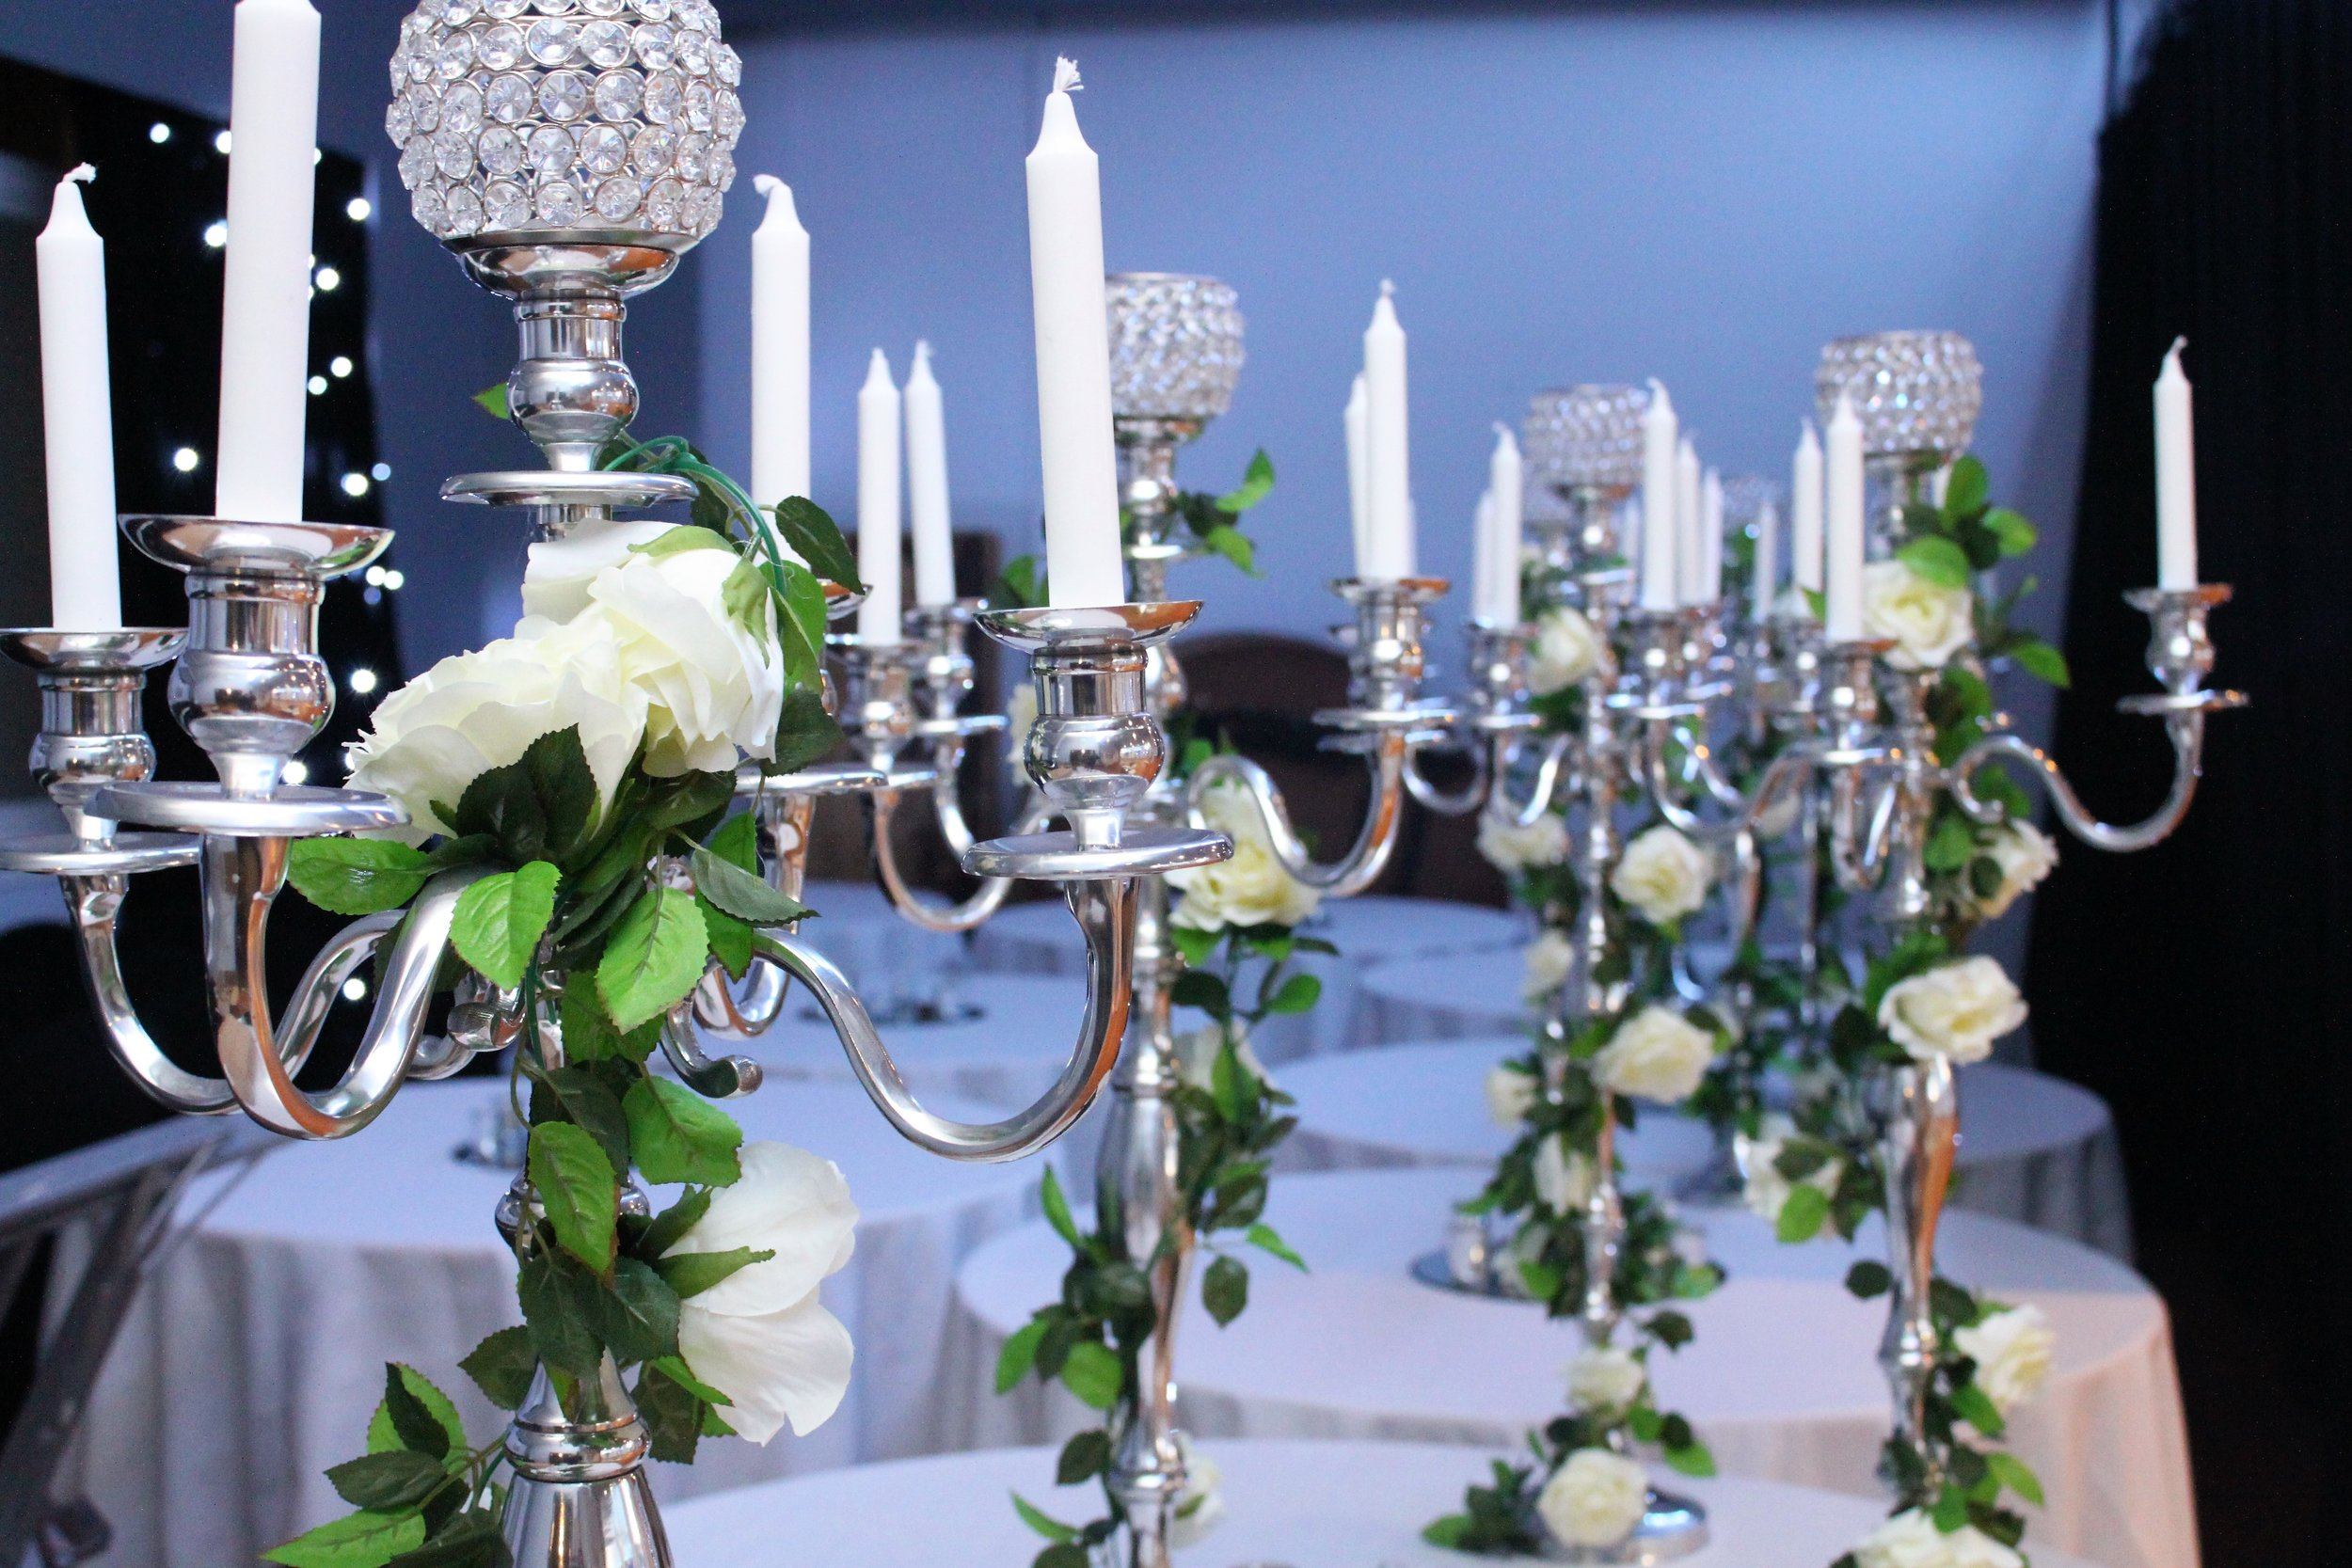 Candelabras - Candelabras make the perfect centrepiece and bring a luxury feel to any table. We stock a range of medium, large and extra large candelabras that come in both silver and gold.Hire from only £15 each or 10 medium for £100!